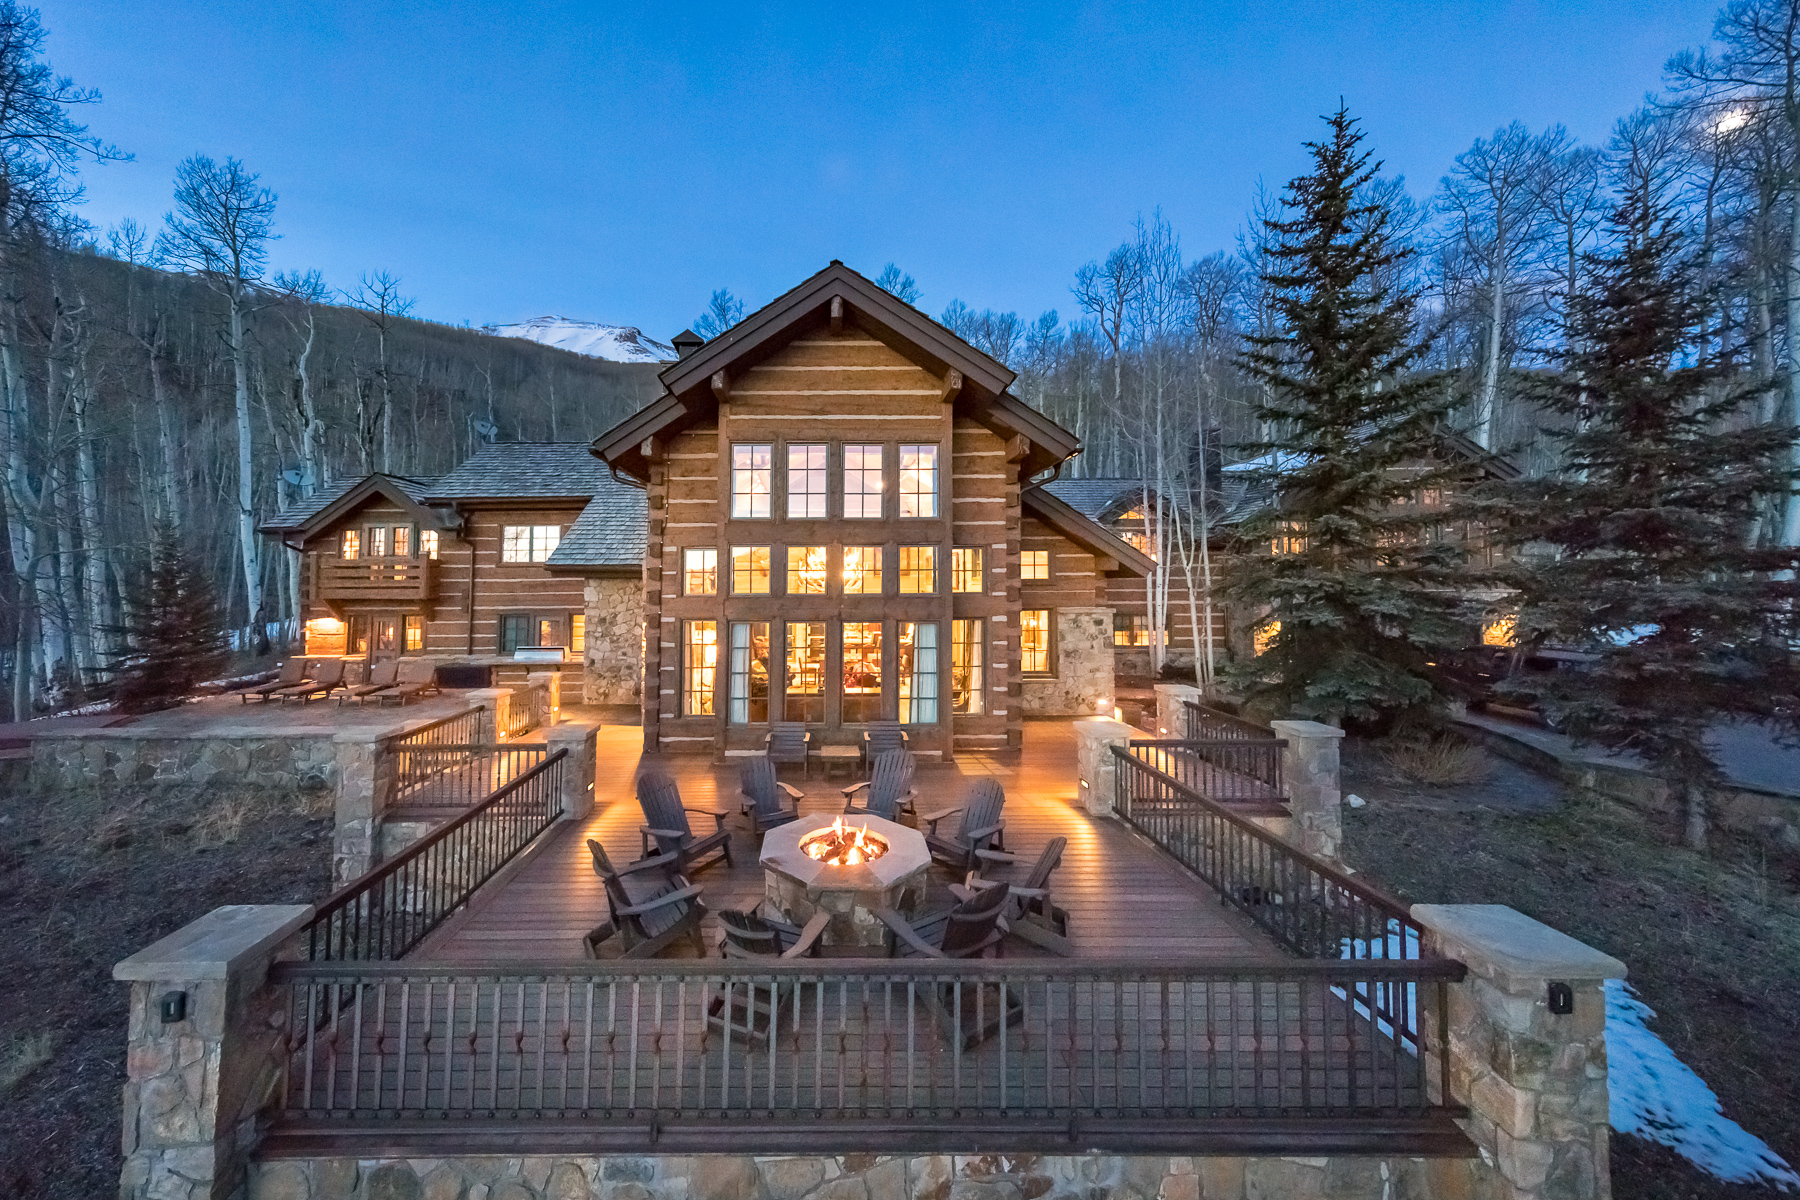 Single Family Home for Active at 106 Cristina's Way 106 Cristina's Way Telluride, Colorado 81435 United States